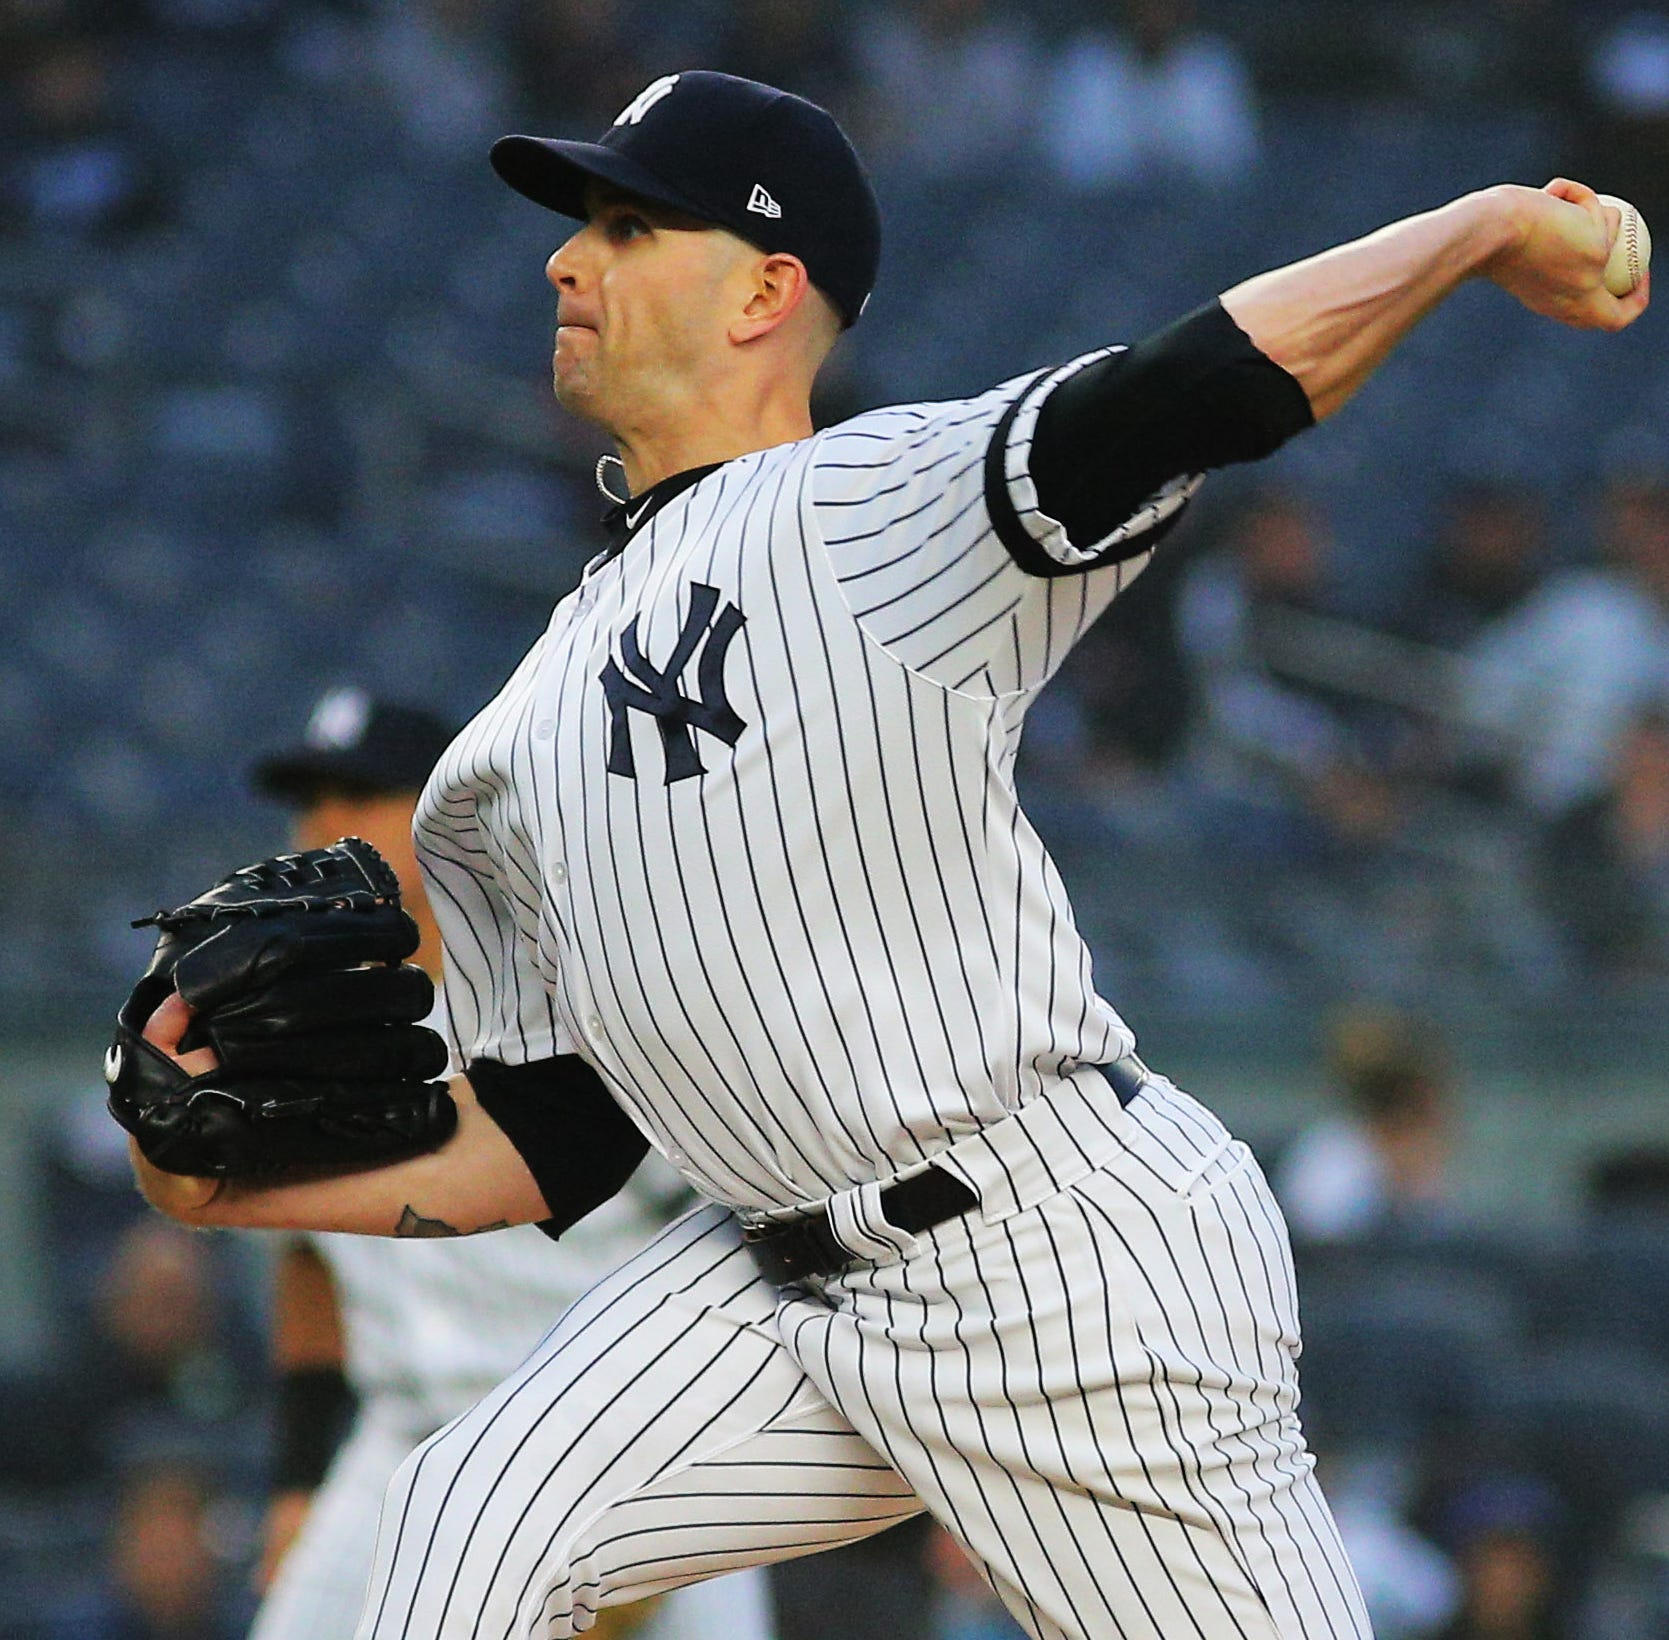 James Paxton pulled from Yankees game vs. Twins with sore knee, will have MRI